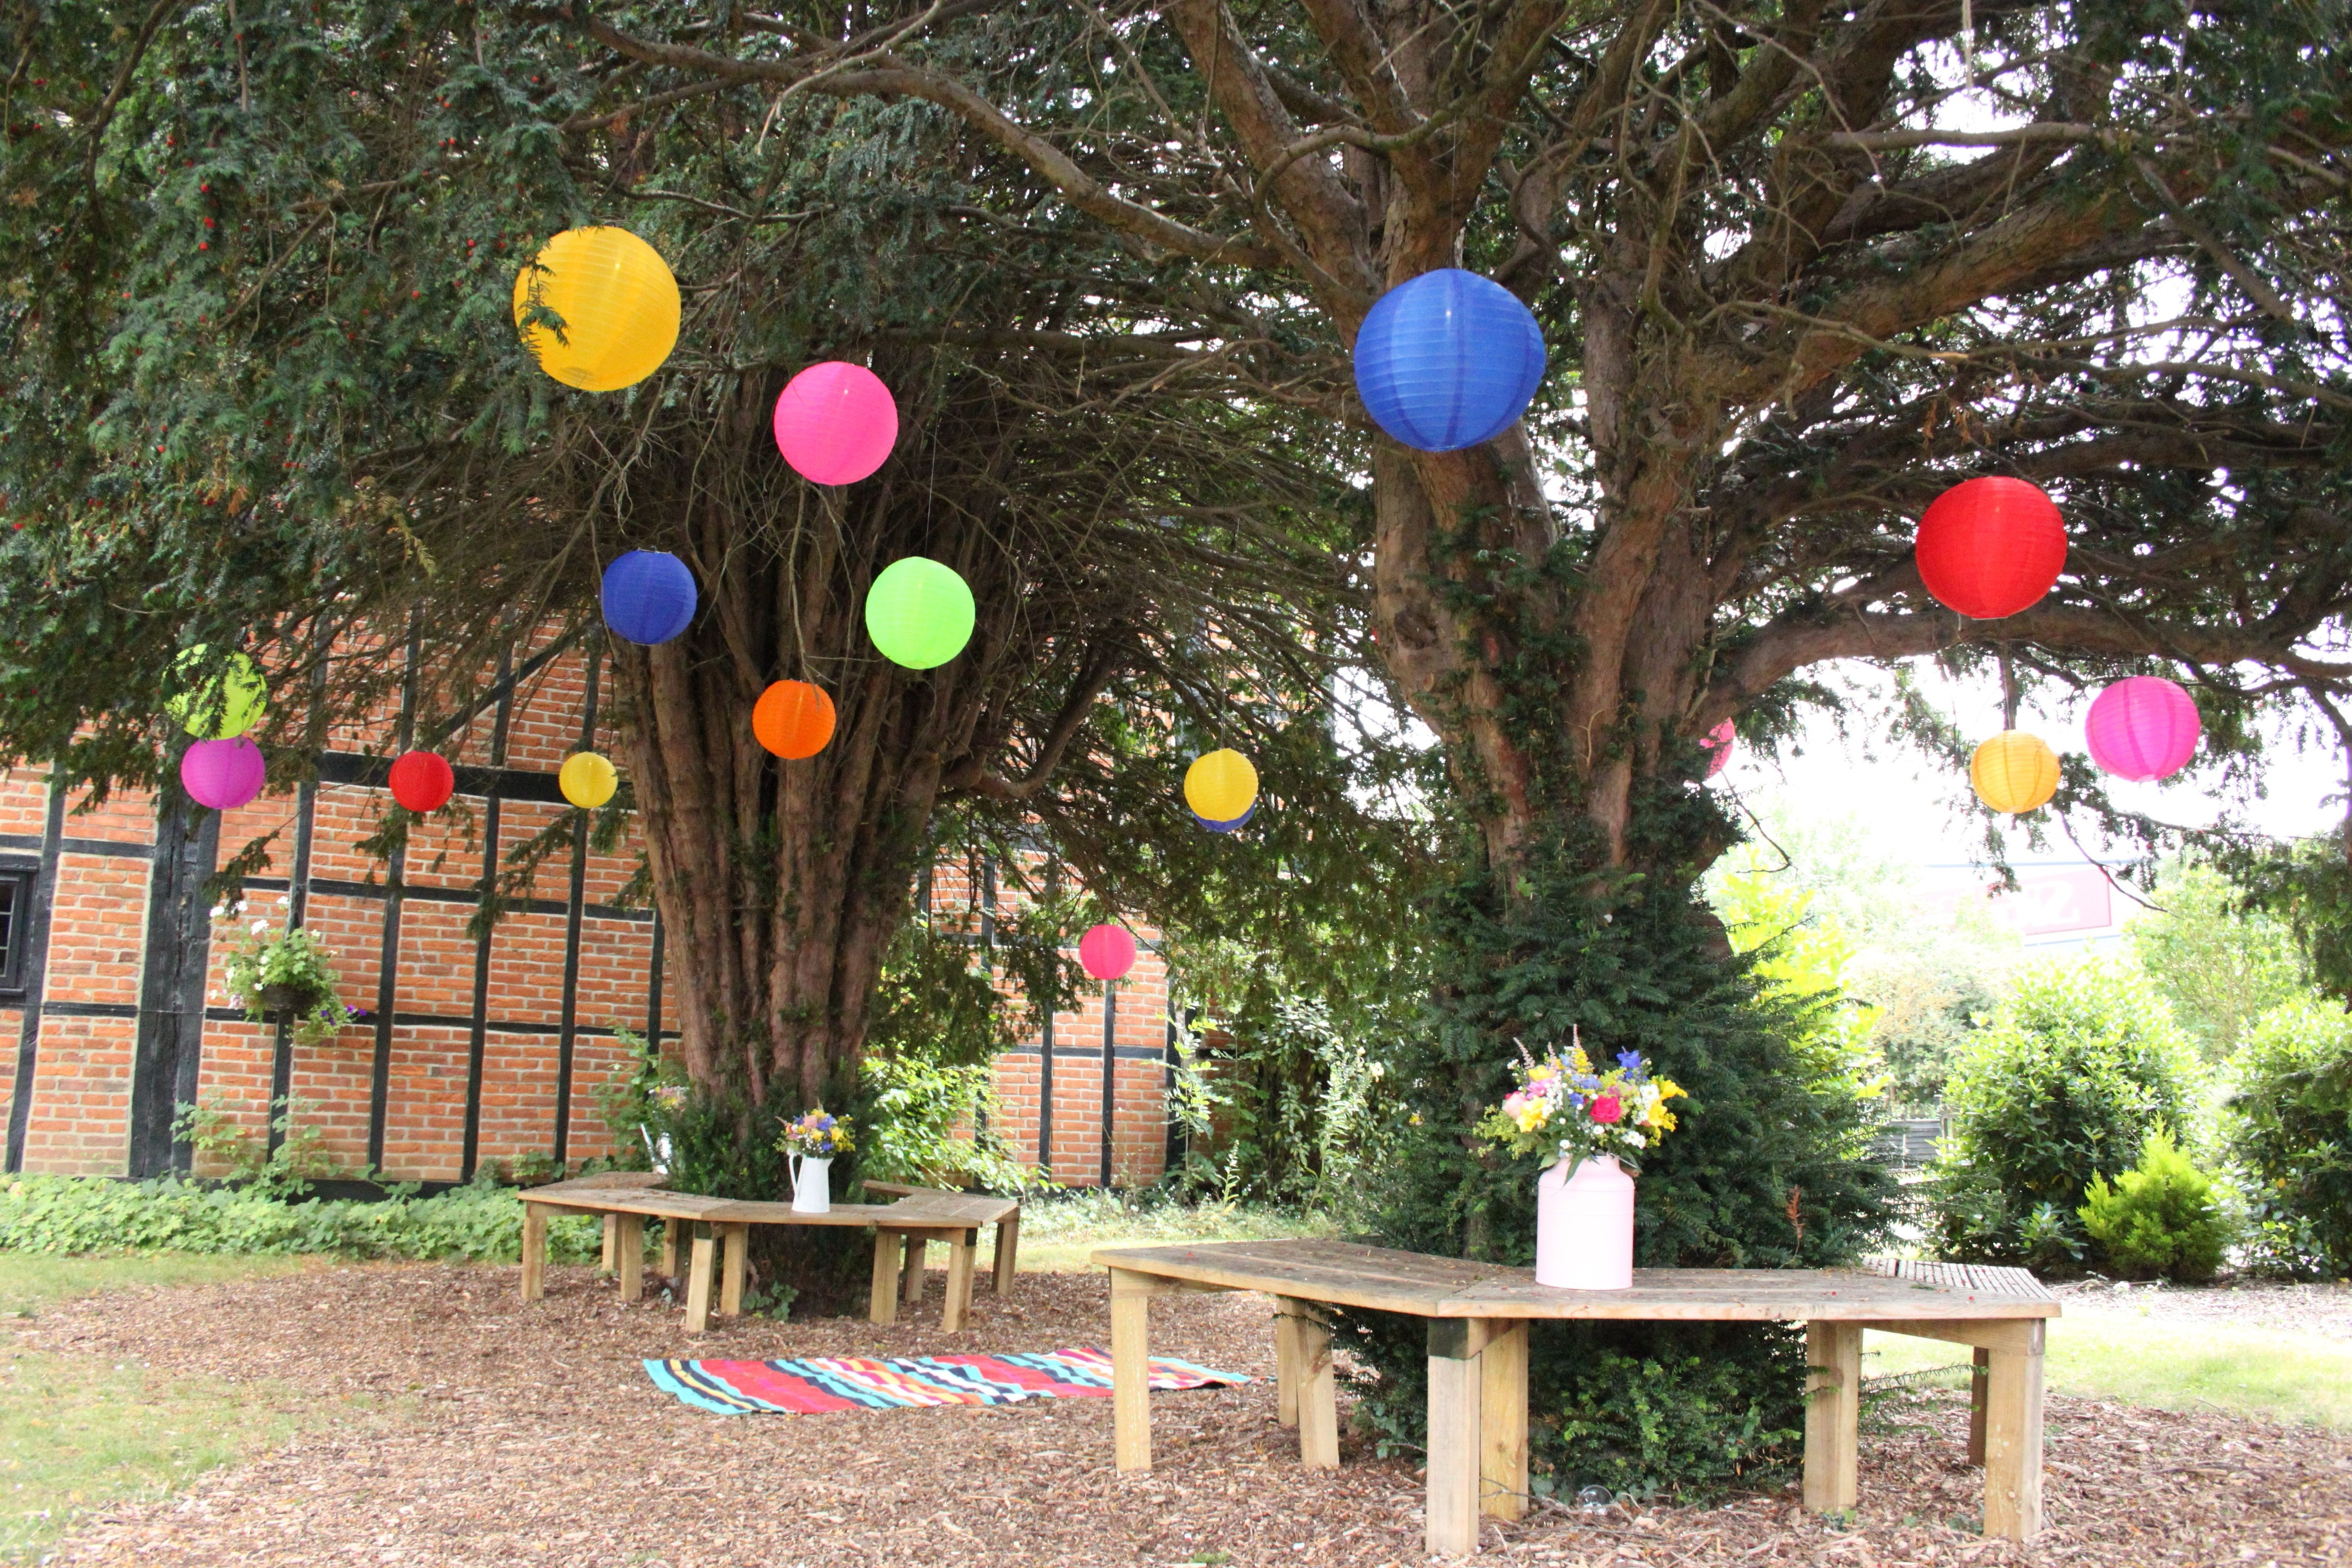 2019 Mad Hatters Outdoor Coloured Nylon Lanterns Hanging Randomly In The Regarding Outdoor Lanterns For Parties (View 3 of 20)